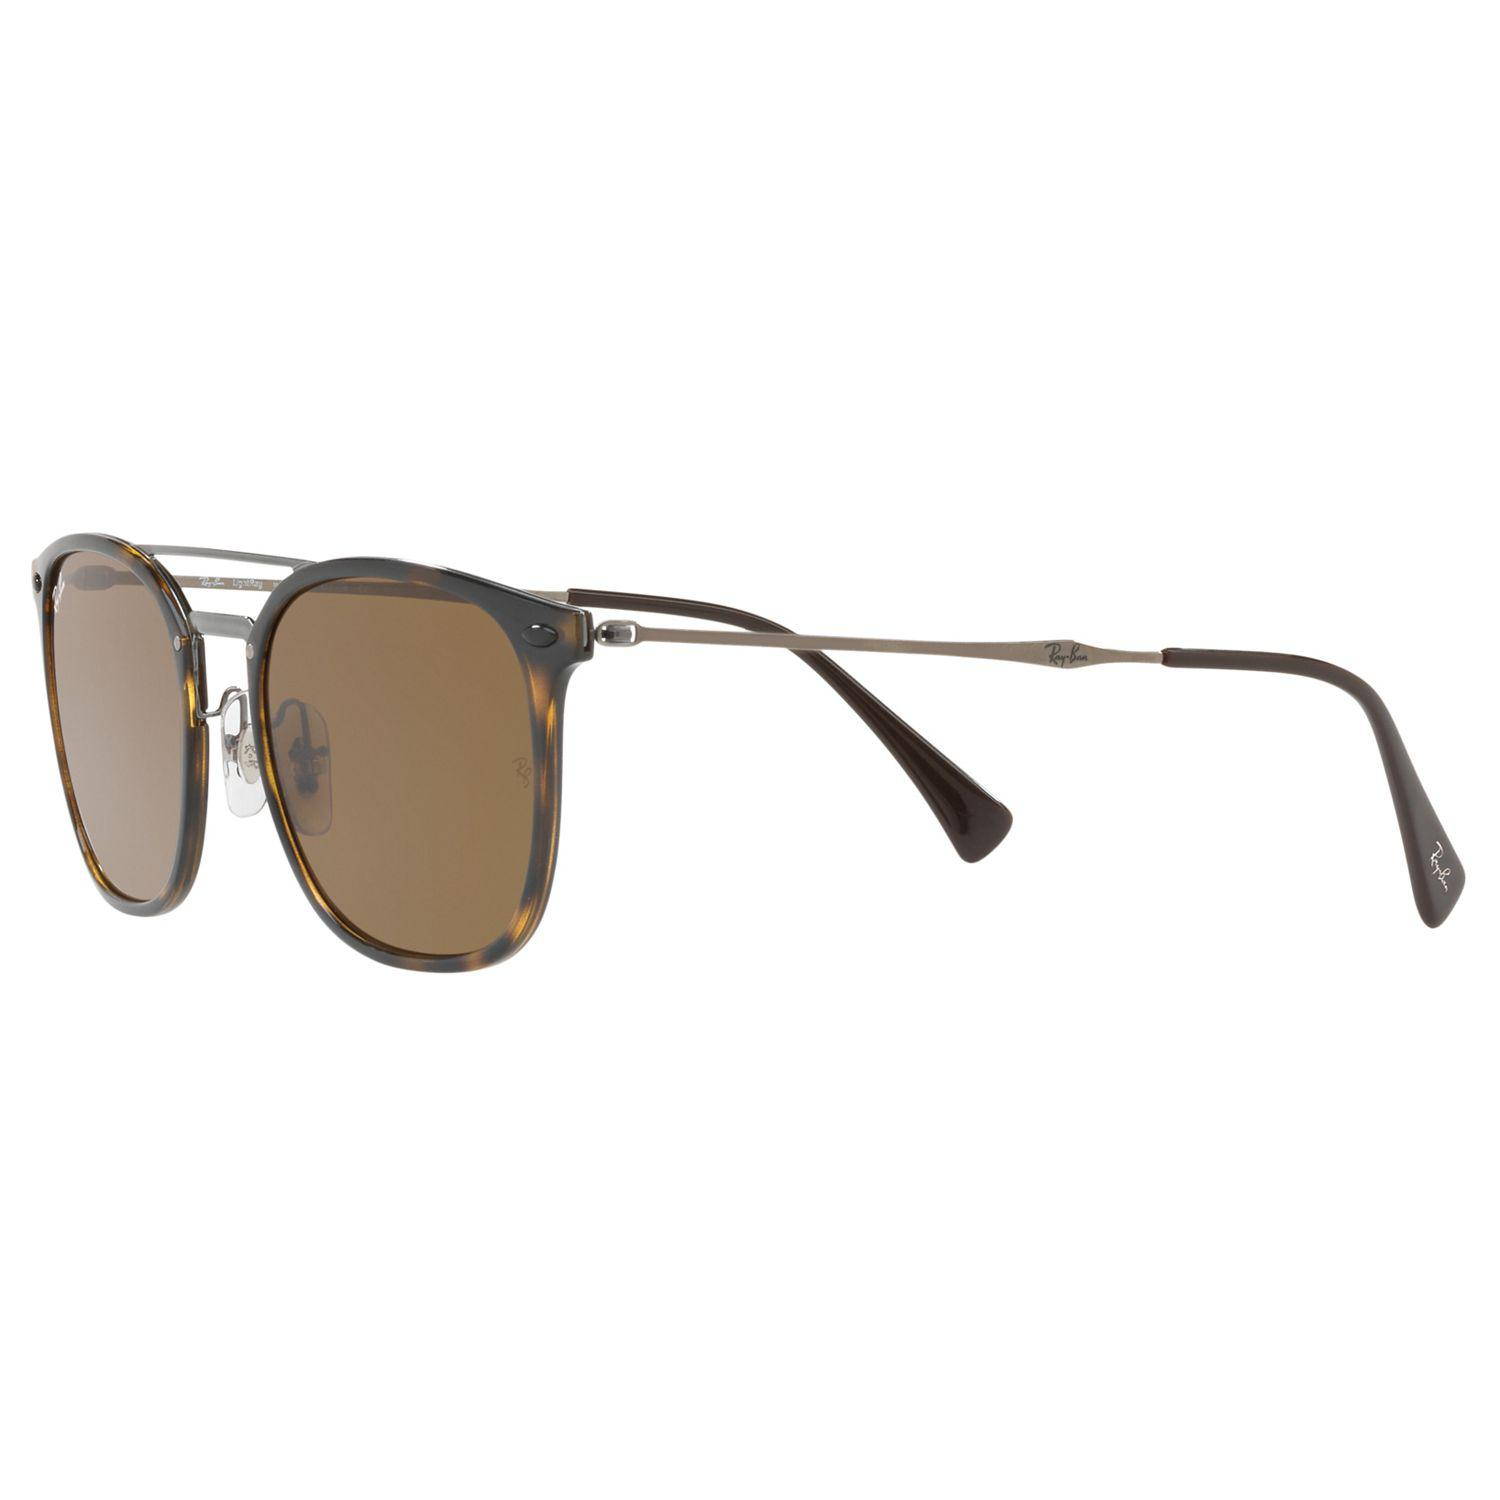 041caad834 Ray-Ban - Brown Rb4286 Square Sunglasses for Men - Lyst. View fullscreen